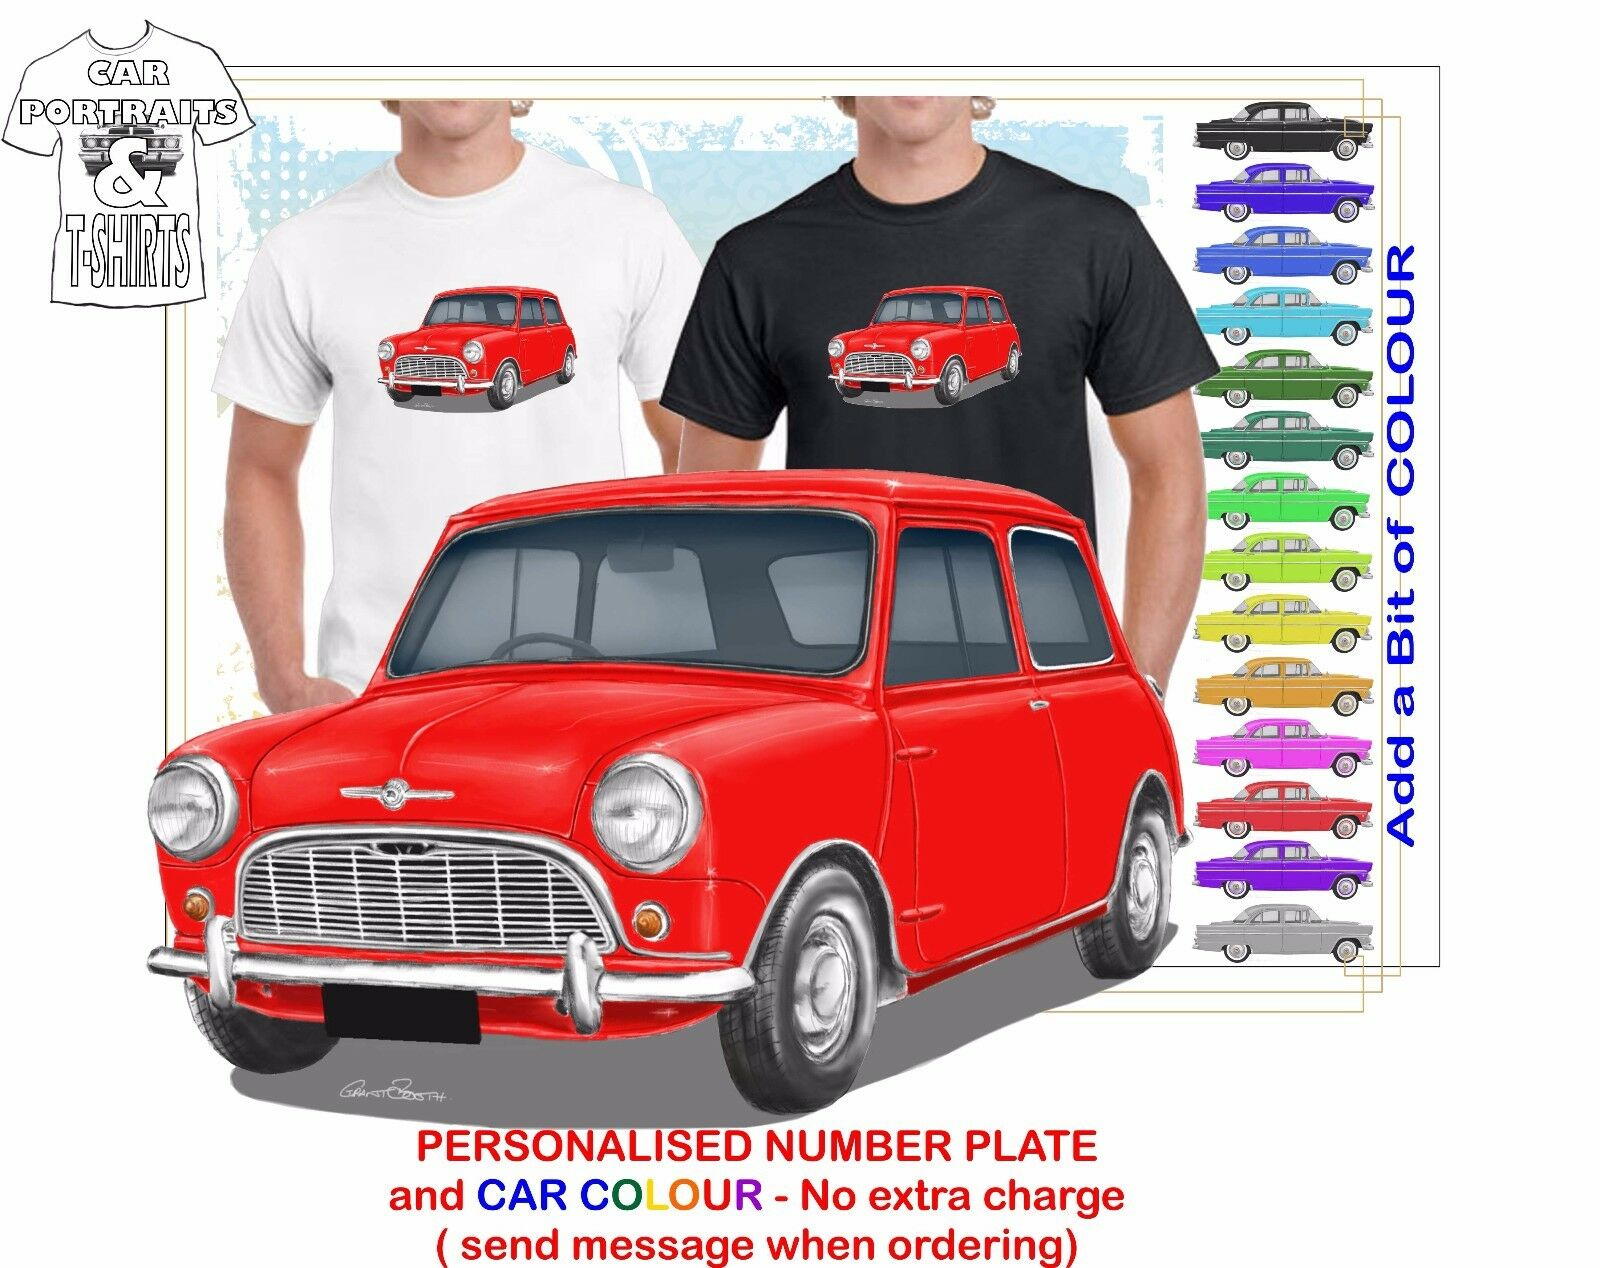 CLASSIC 1959-62 MORRIS 850 MINI MINOR ILLUSTRATED T-SHIRT MUSCLE RETRO  CAR